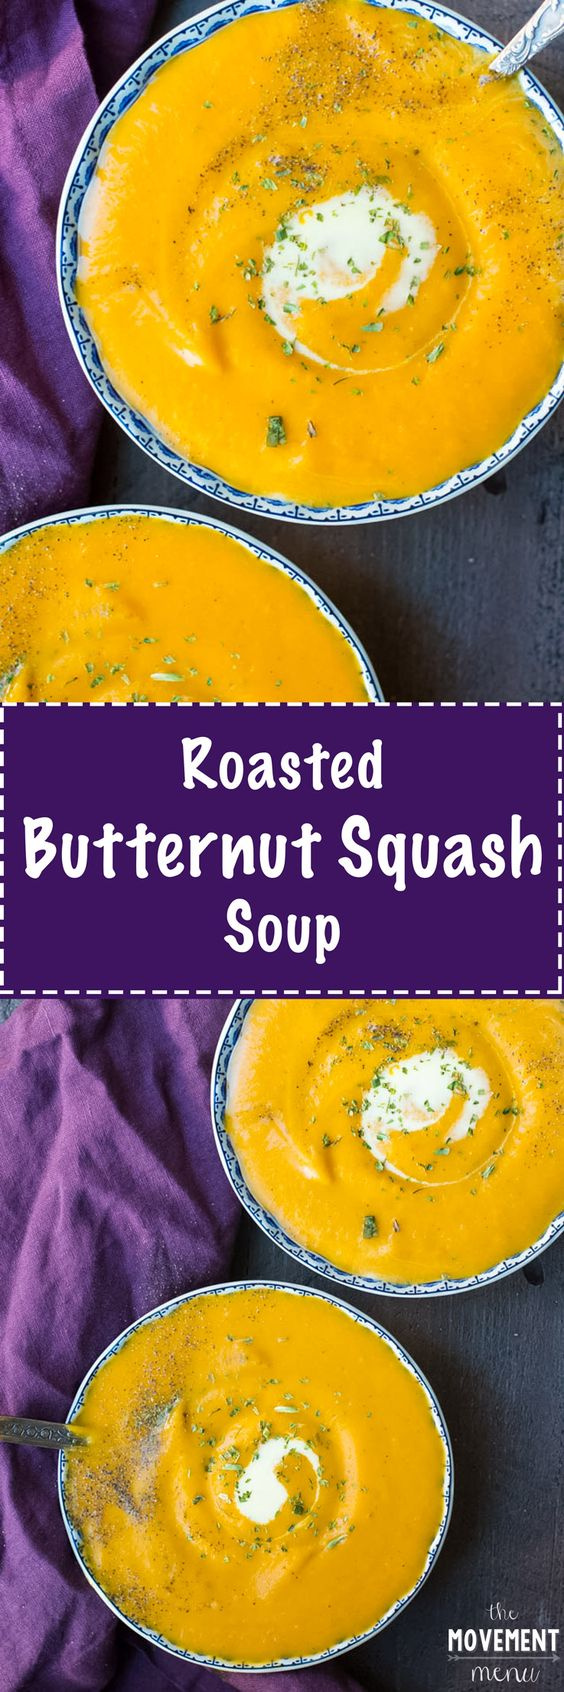 This recipe for creamy roasted butternut squash soup is a real game changer. It's warm, delicious & comforting. Healthy, too! TheMovementMenu.com